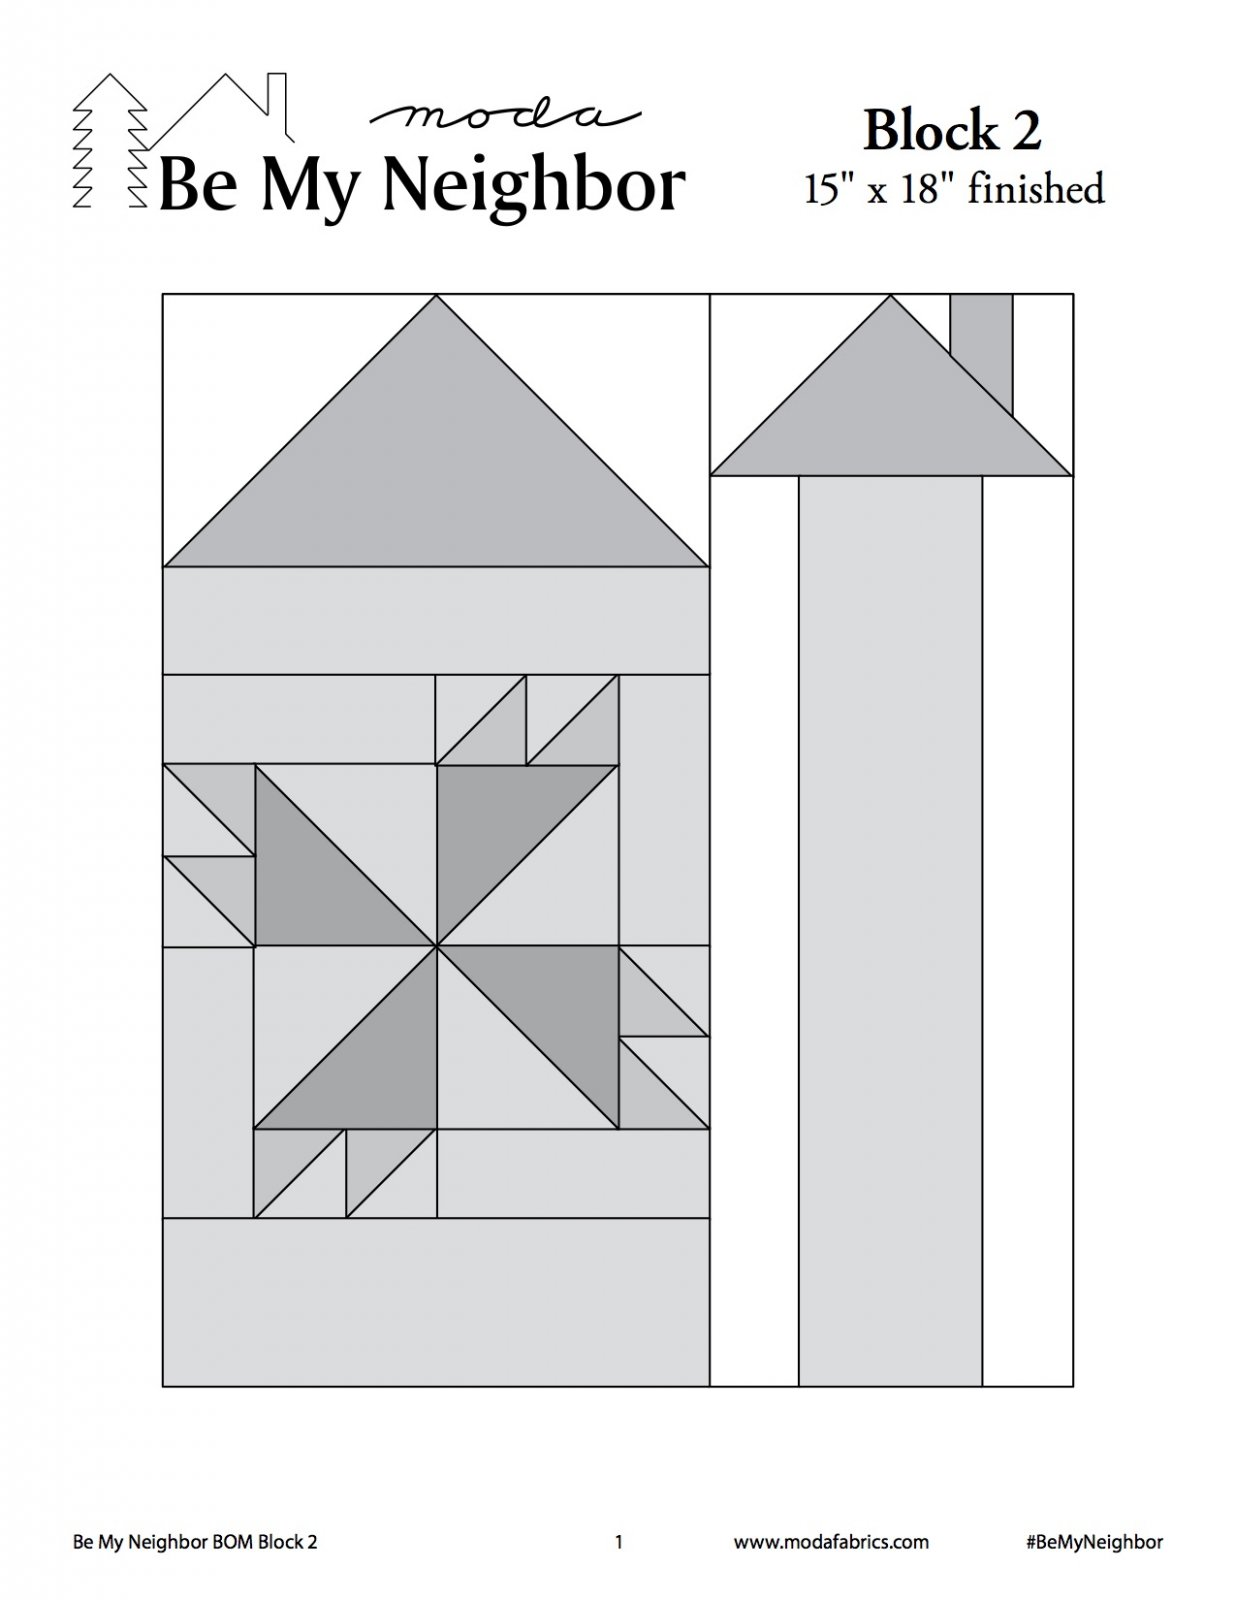 Be My Neighbor Block 02 2